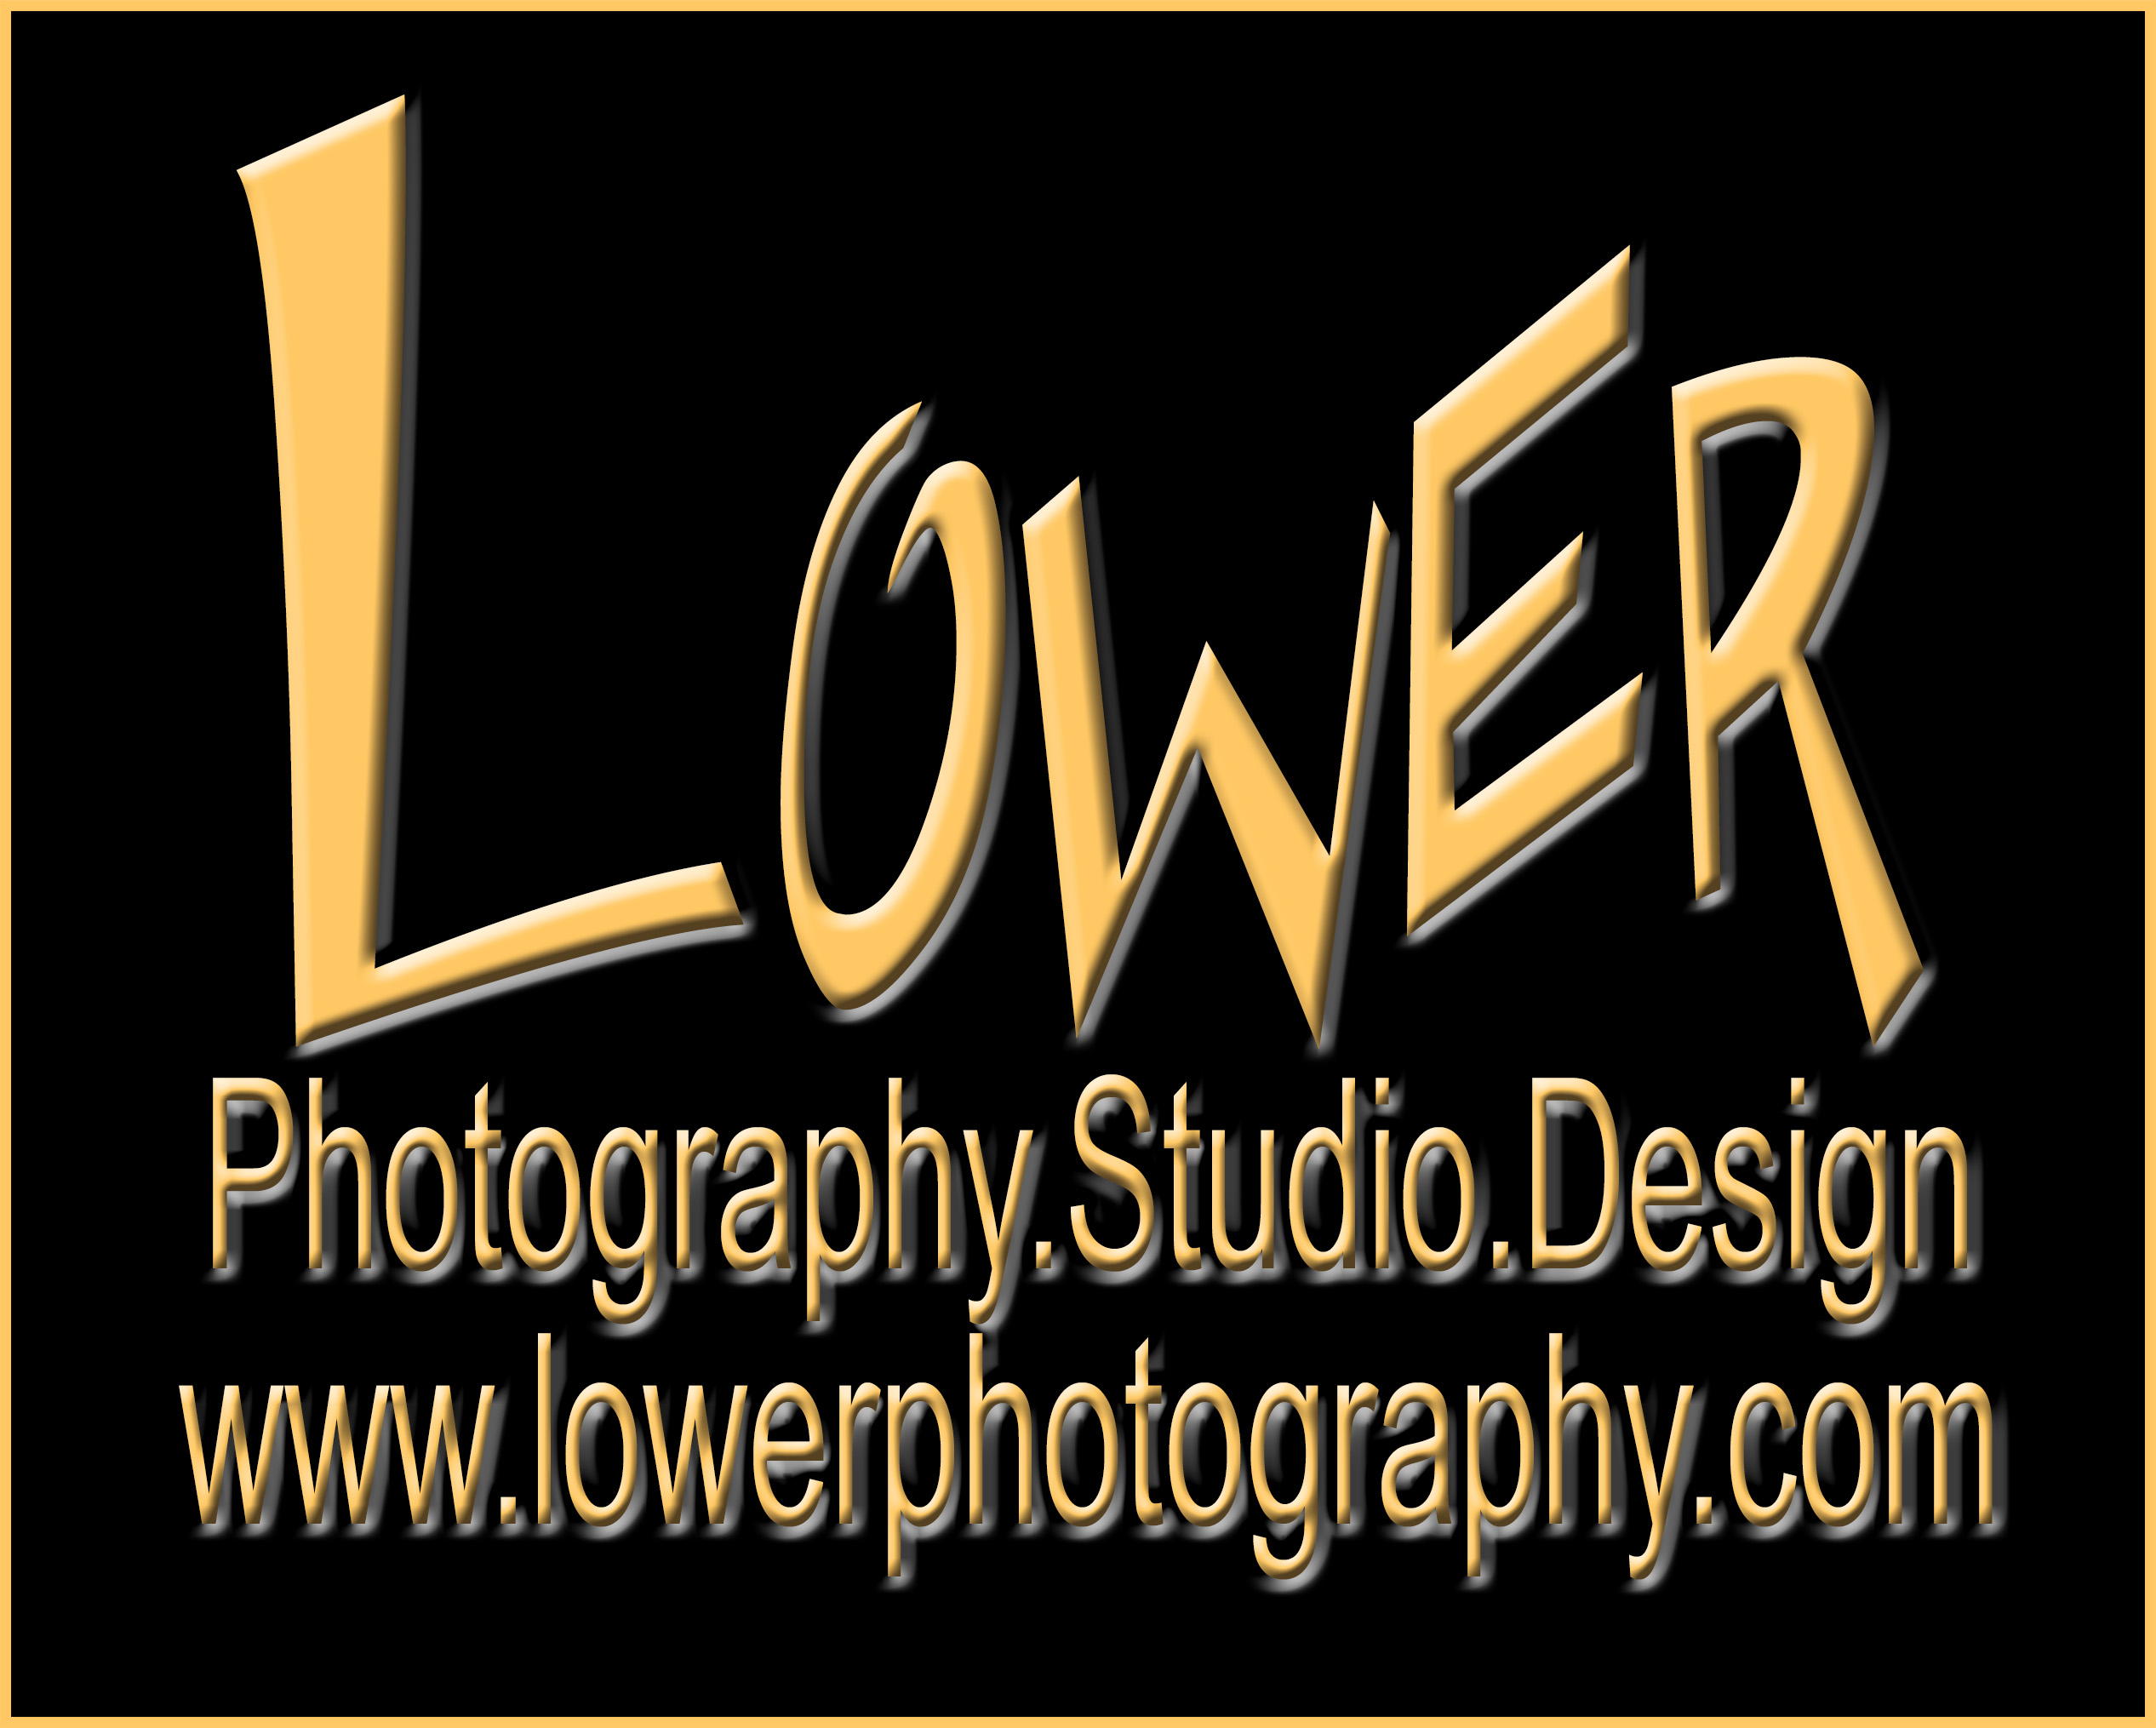 Lower Photography and Studio Photo